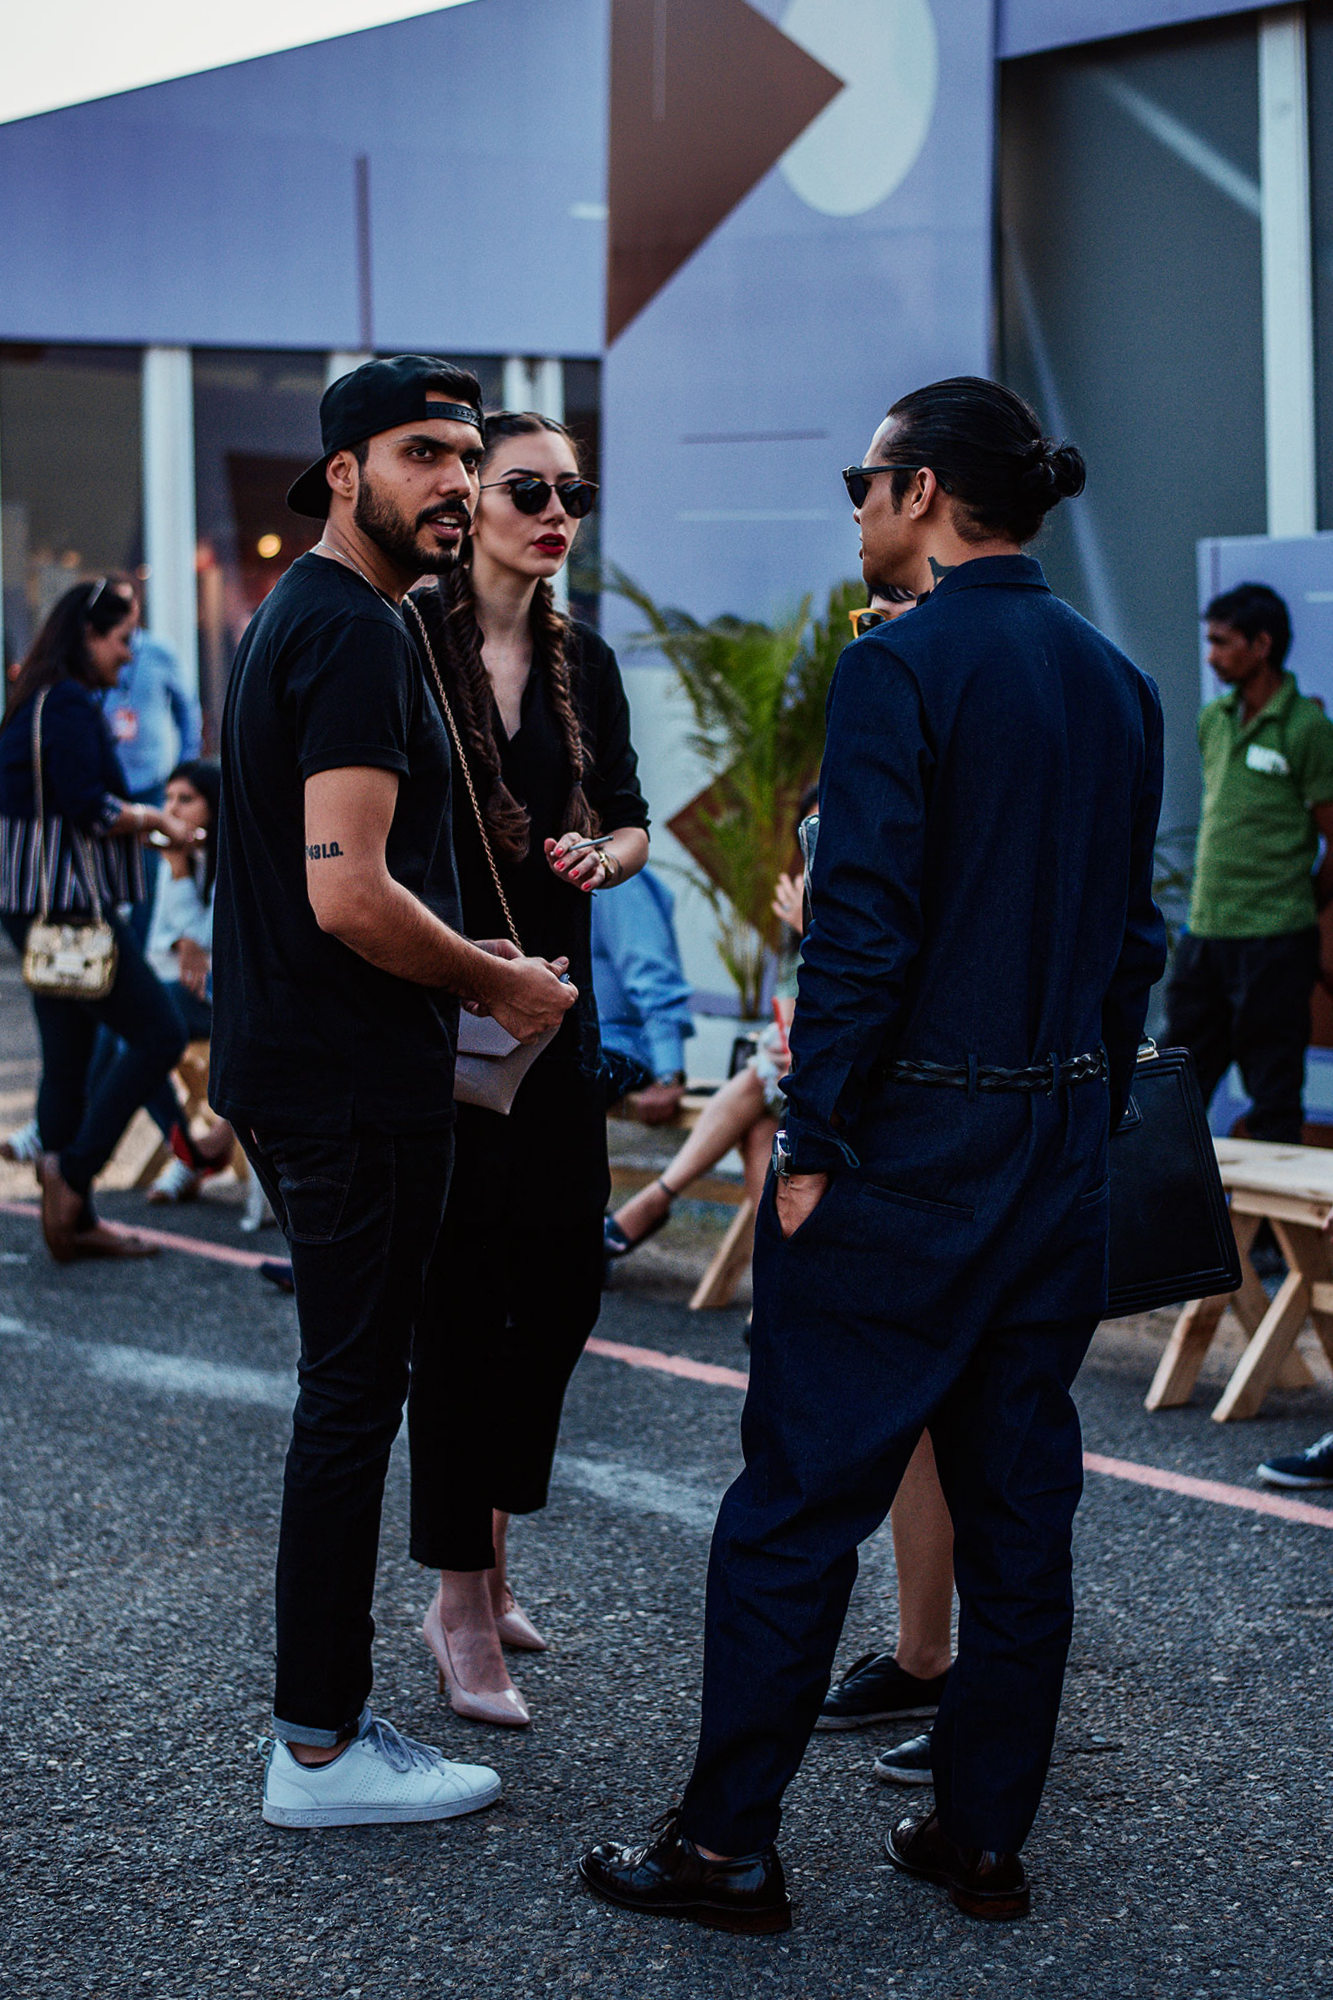 AIFW-AW17-Streetstyle-Rawky-Ksh-4